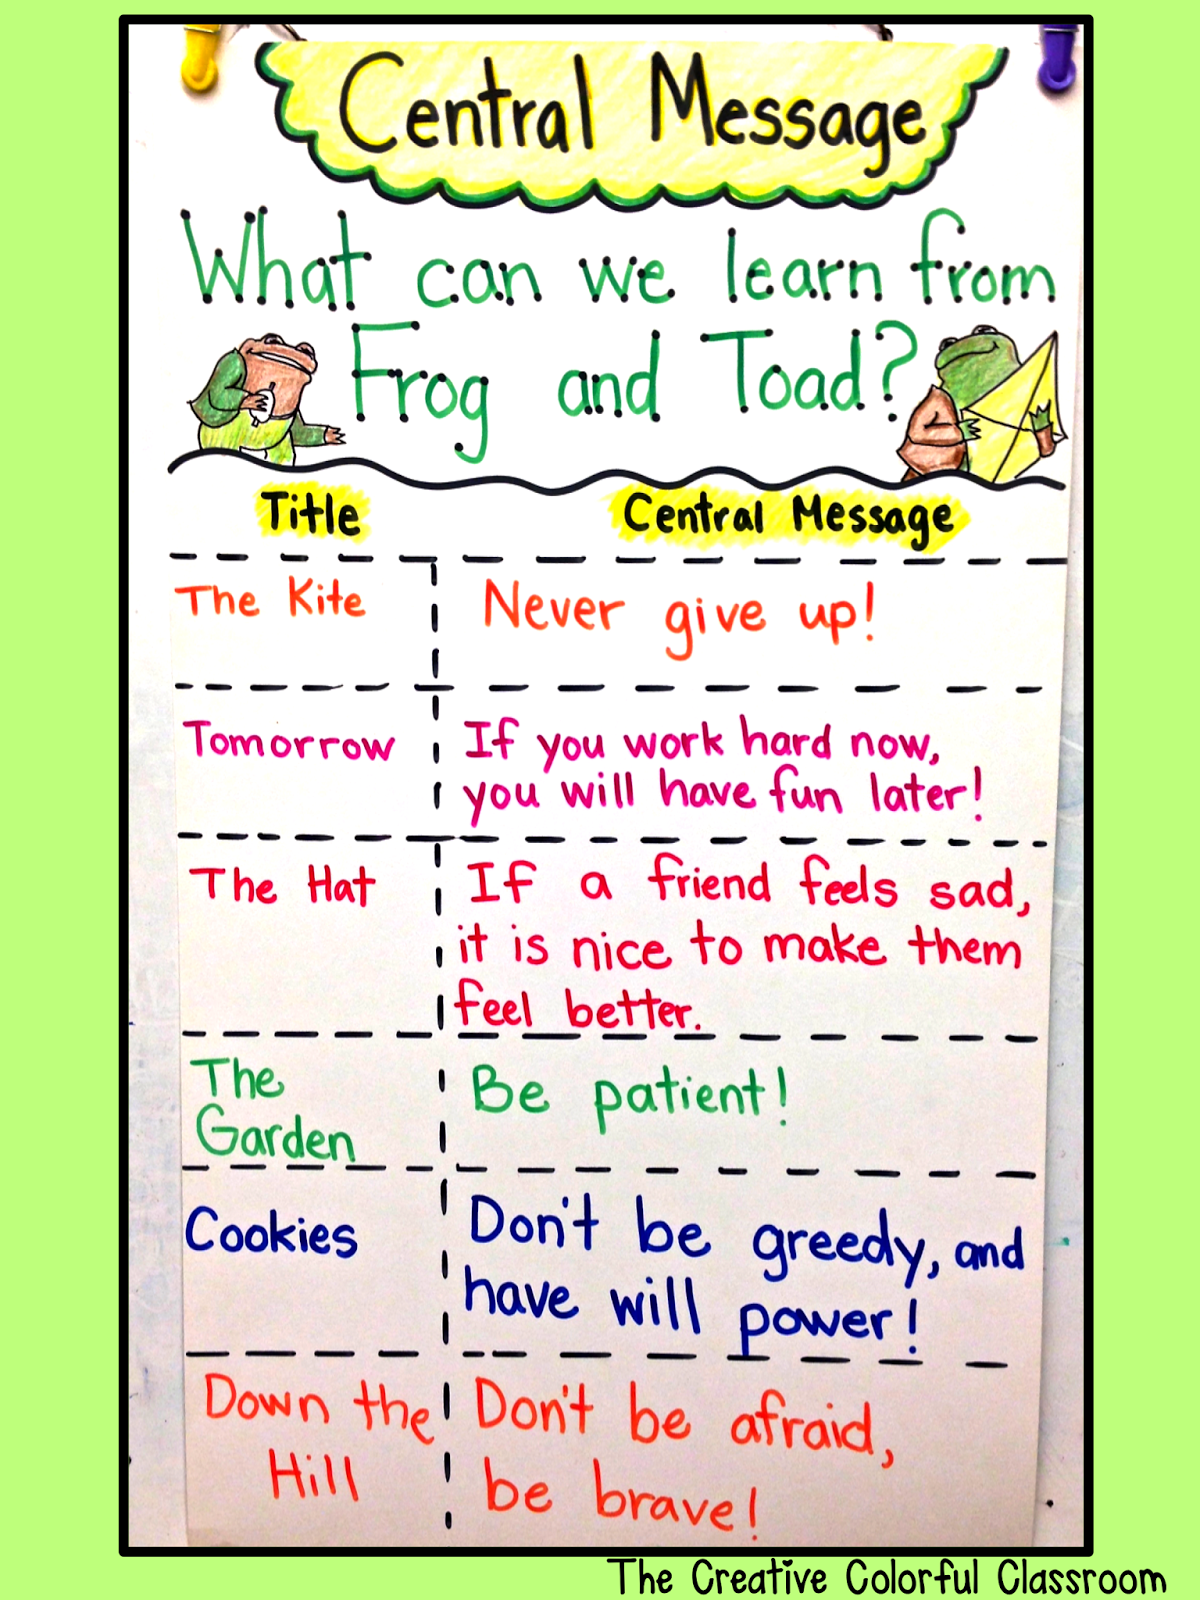 The Creative Colorful Classroom First Grade Reading Central Message Frog And Toad